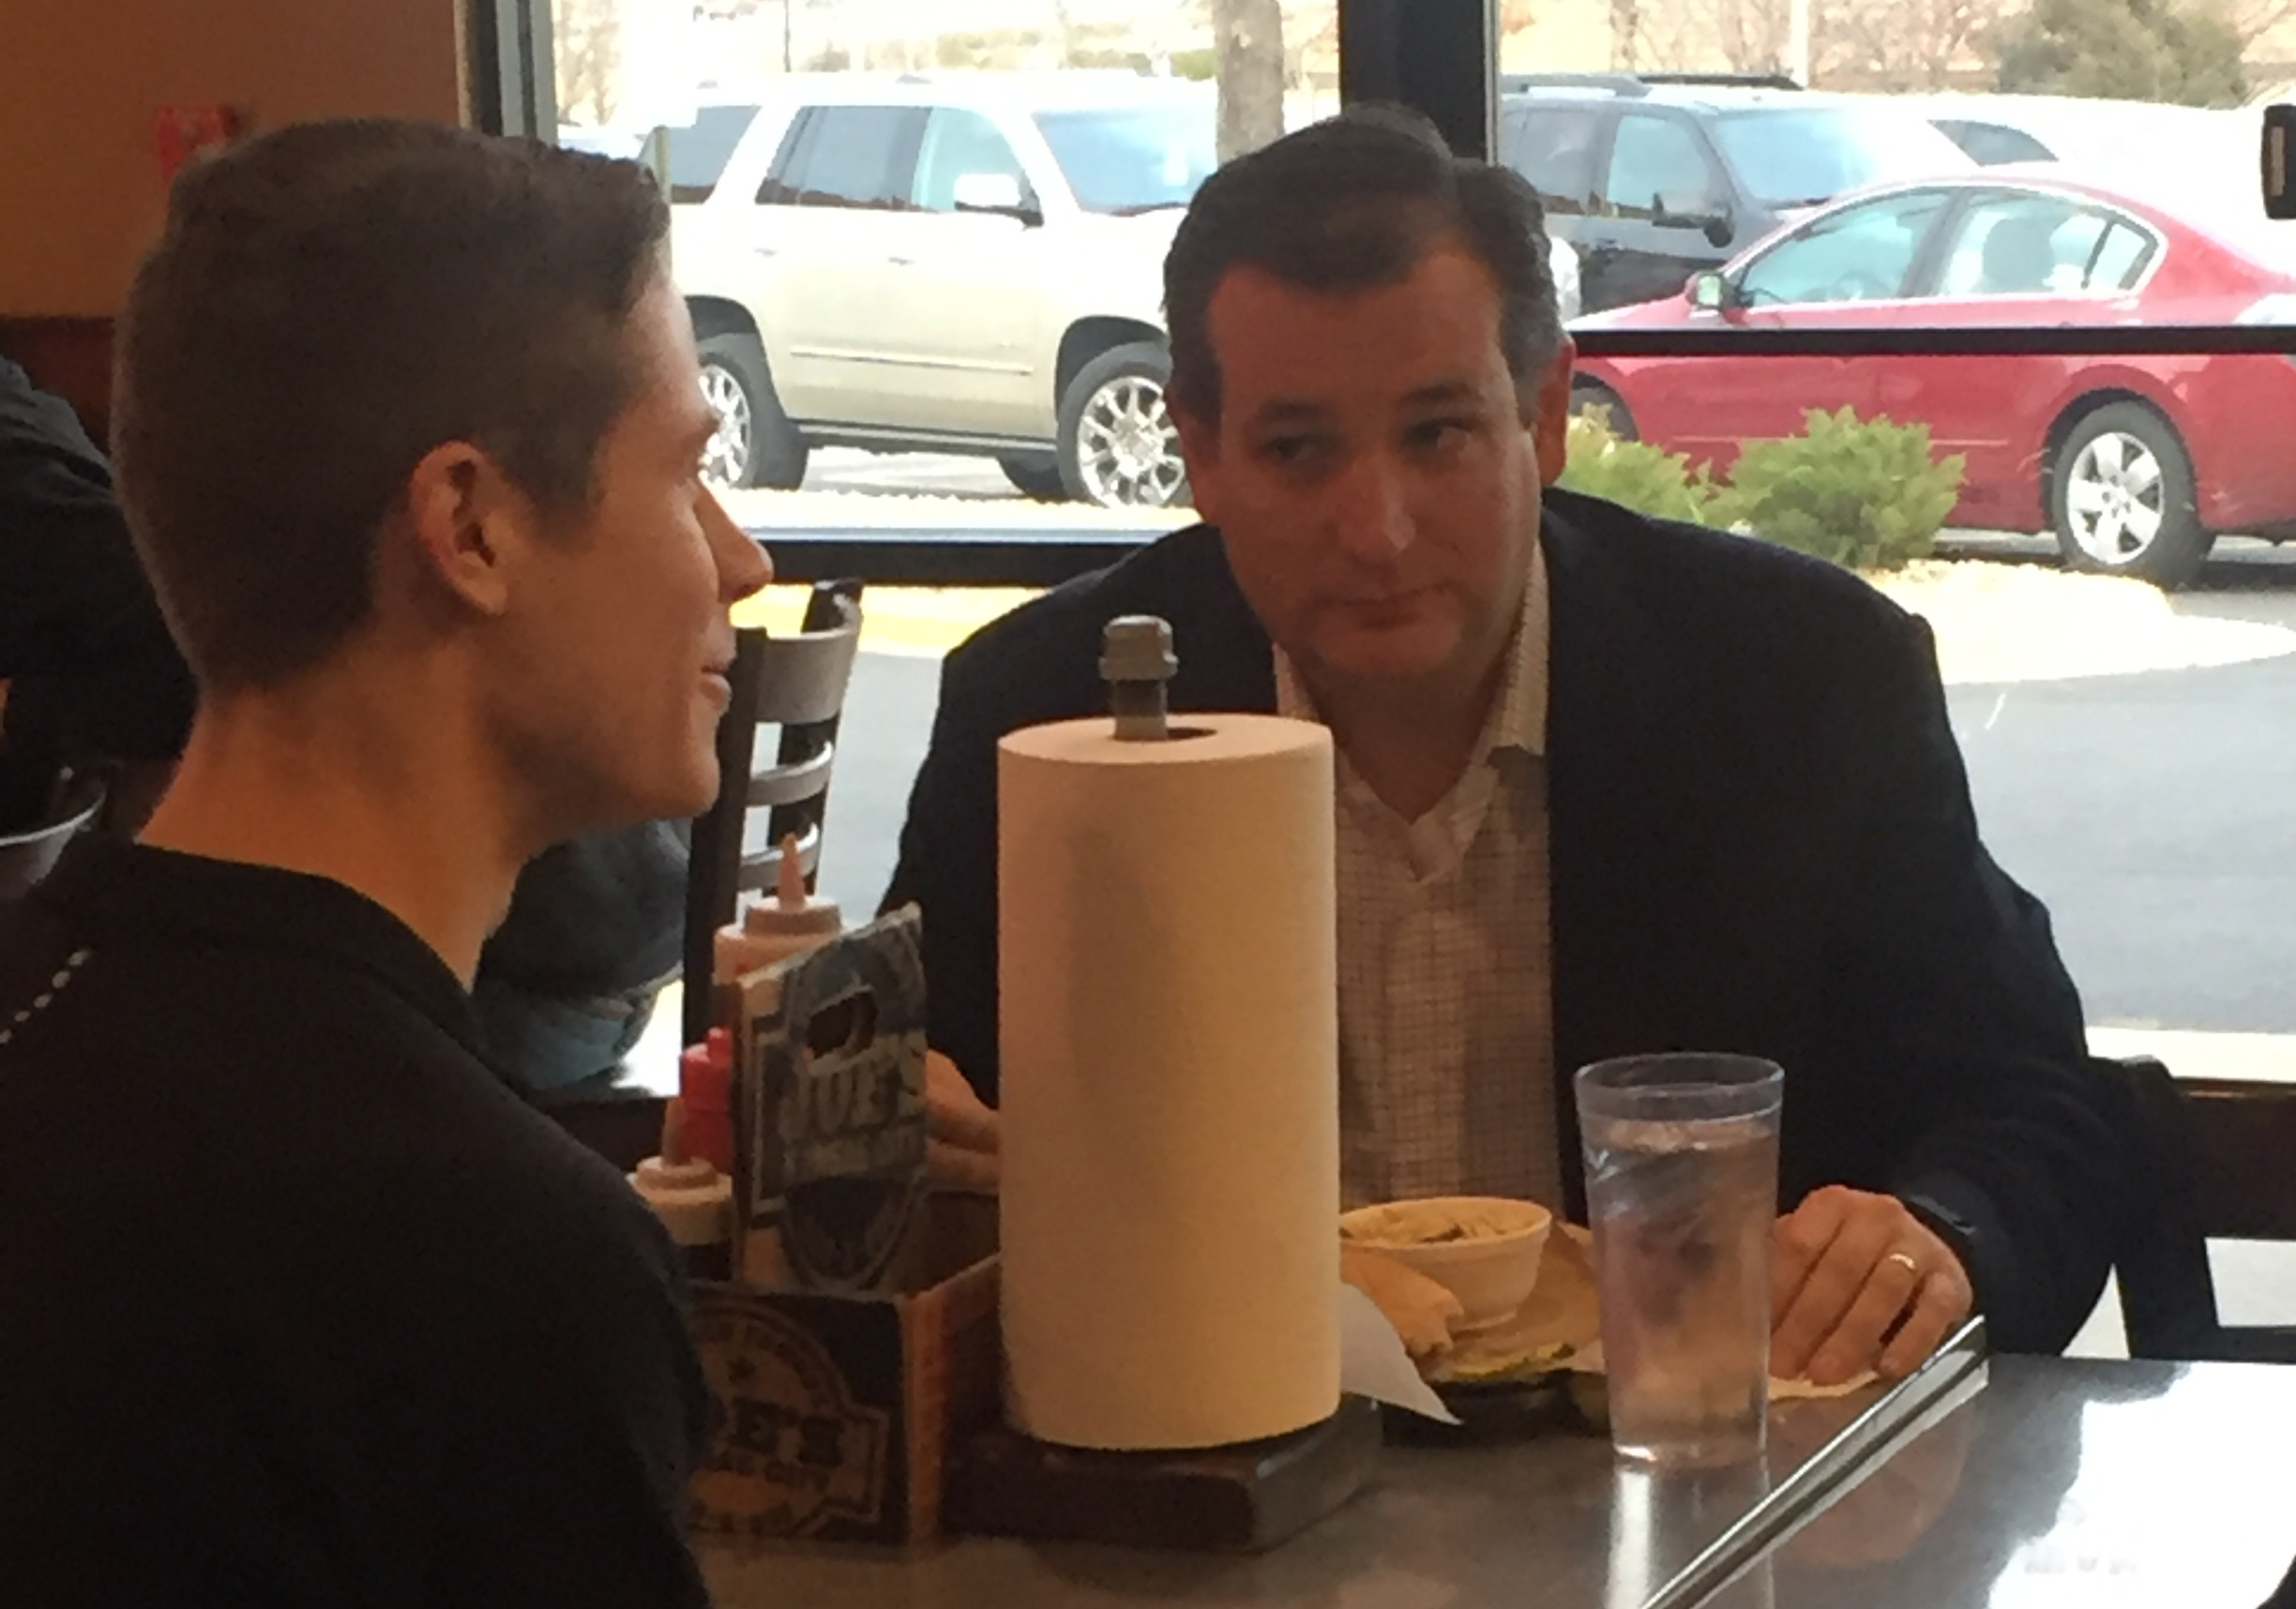 Supporters met with Cruz while he enjoyed a Z-Man.